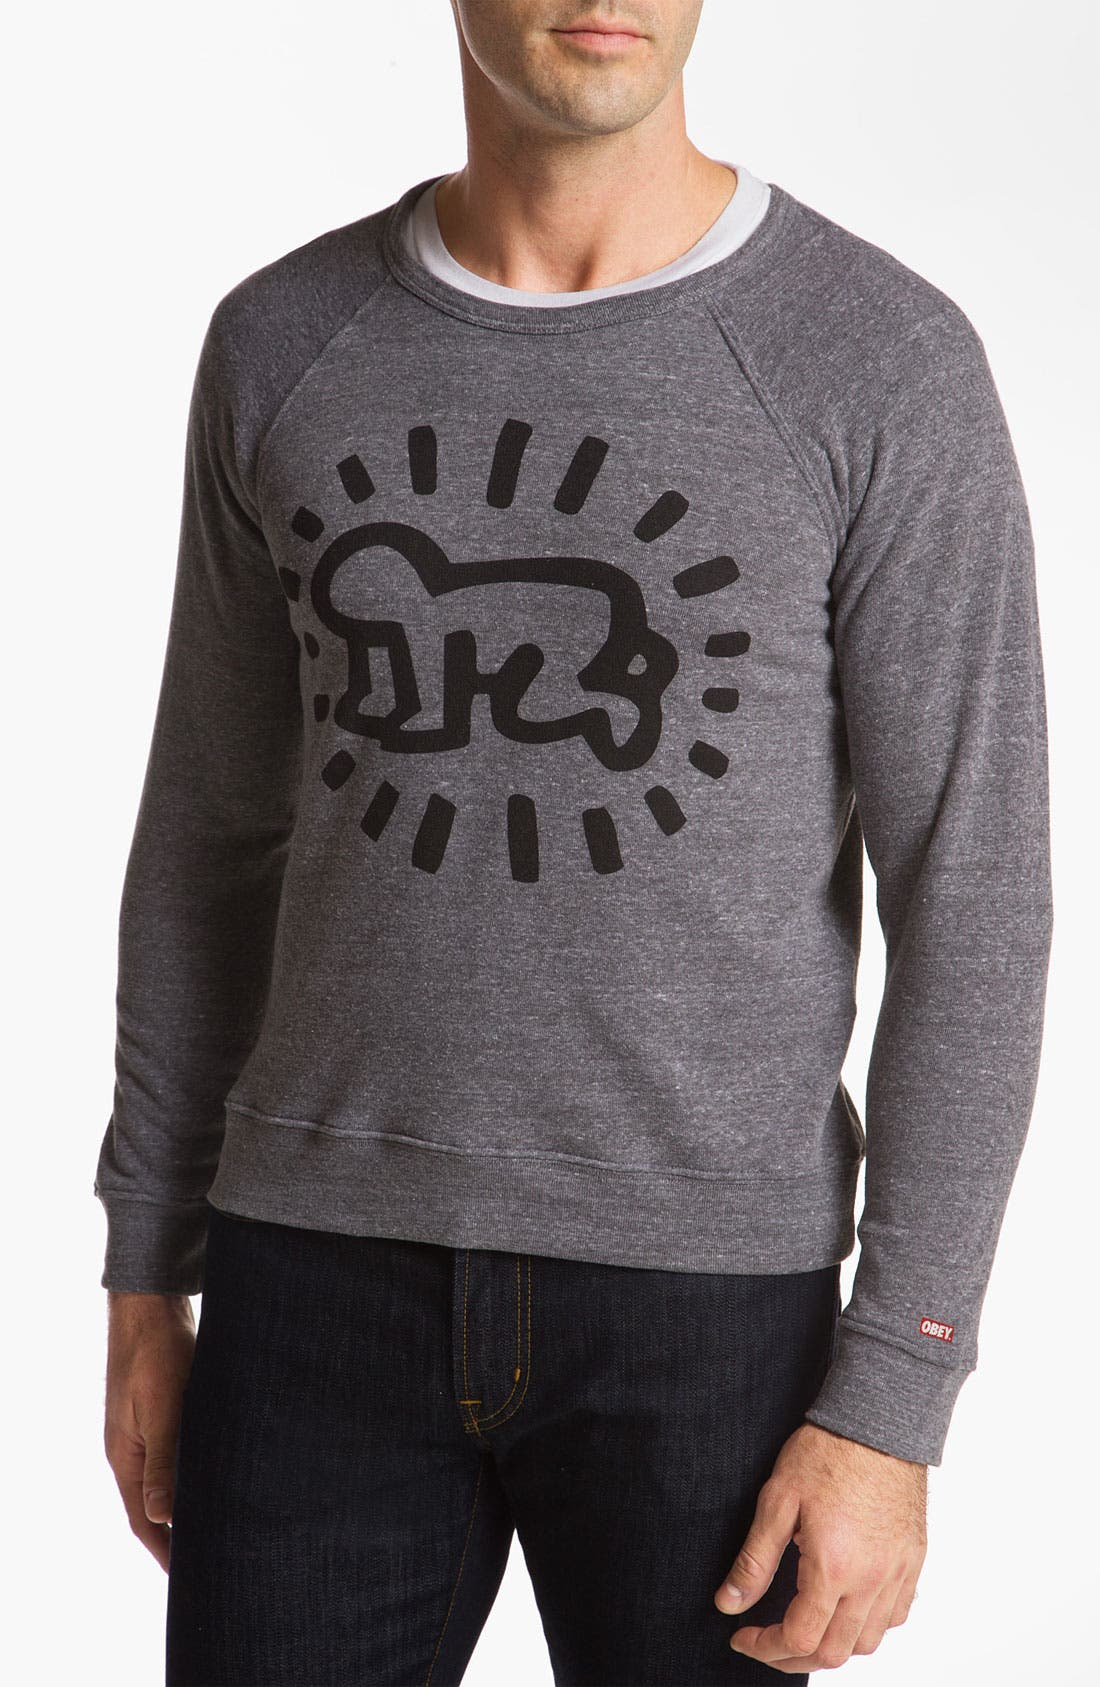 Alternate Image 1 Selected - Obey 'Keith Haring Baby' Crewneck Sweatshirt